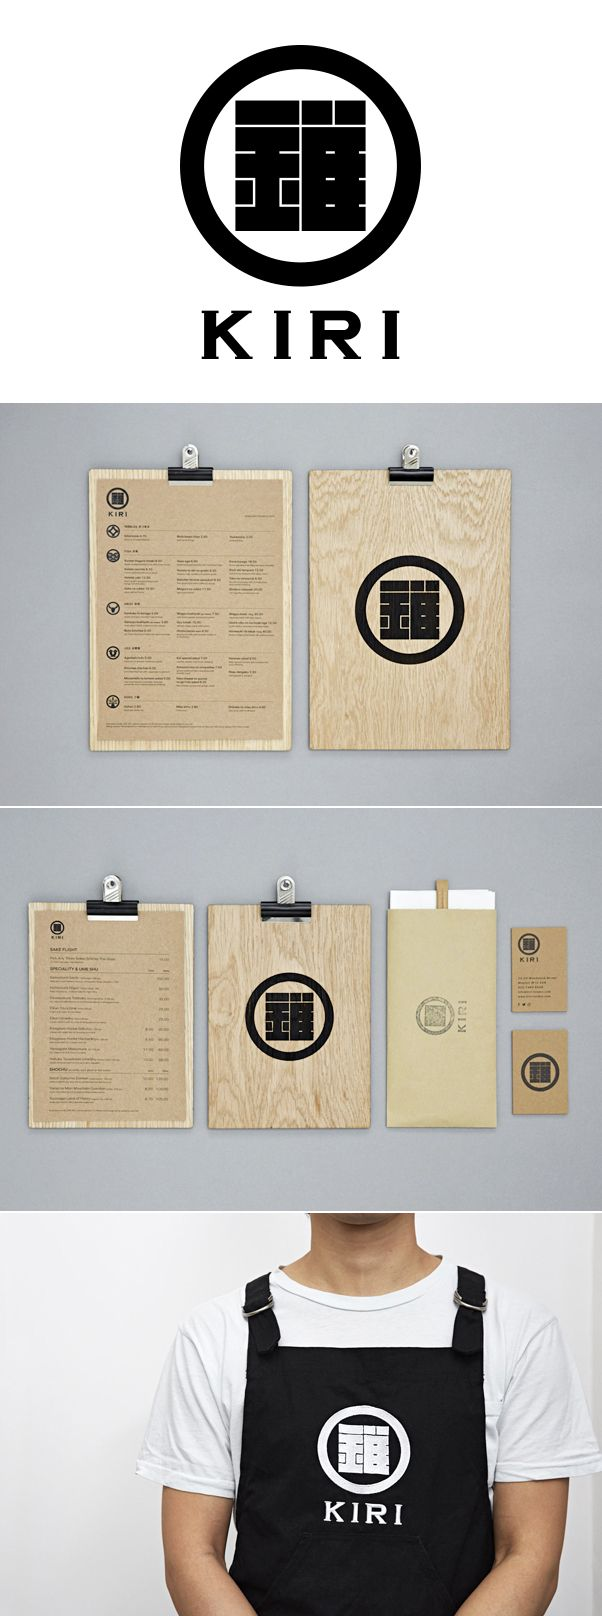 KIRI Japanese restaurant branding and design, menu, uniform #branding #logo #design #restaurant #menu #wood #board #card #kamon #kiri #apron #uniform designed by centrecreative